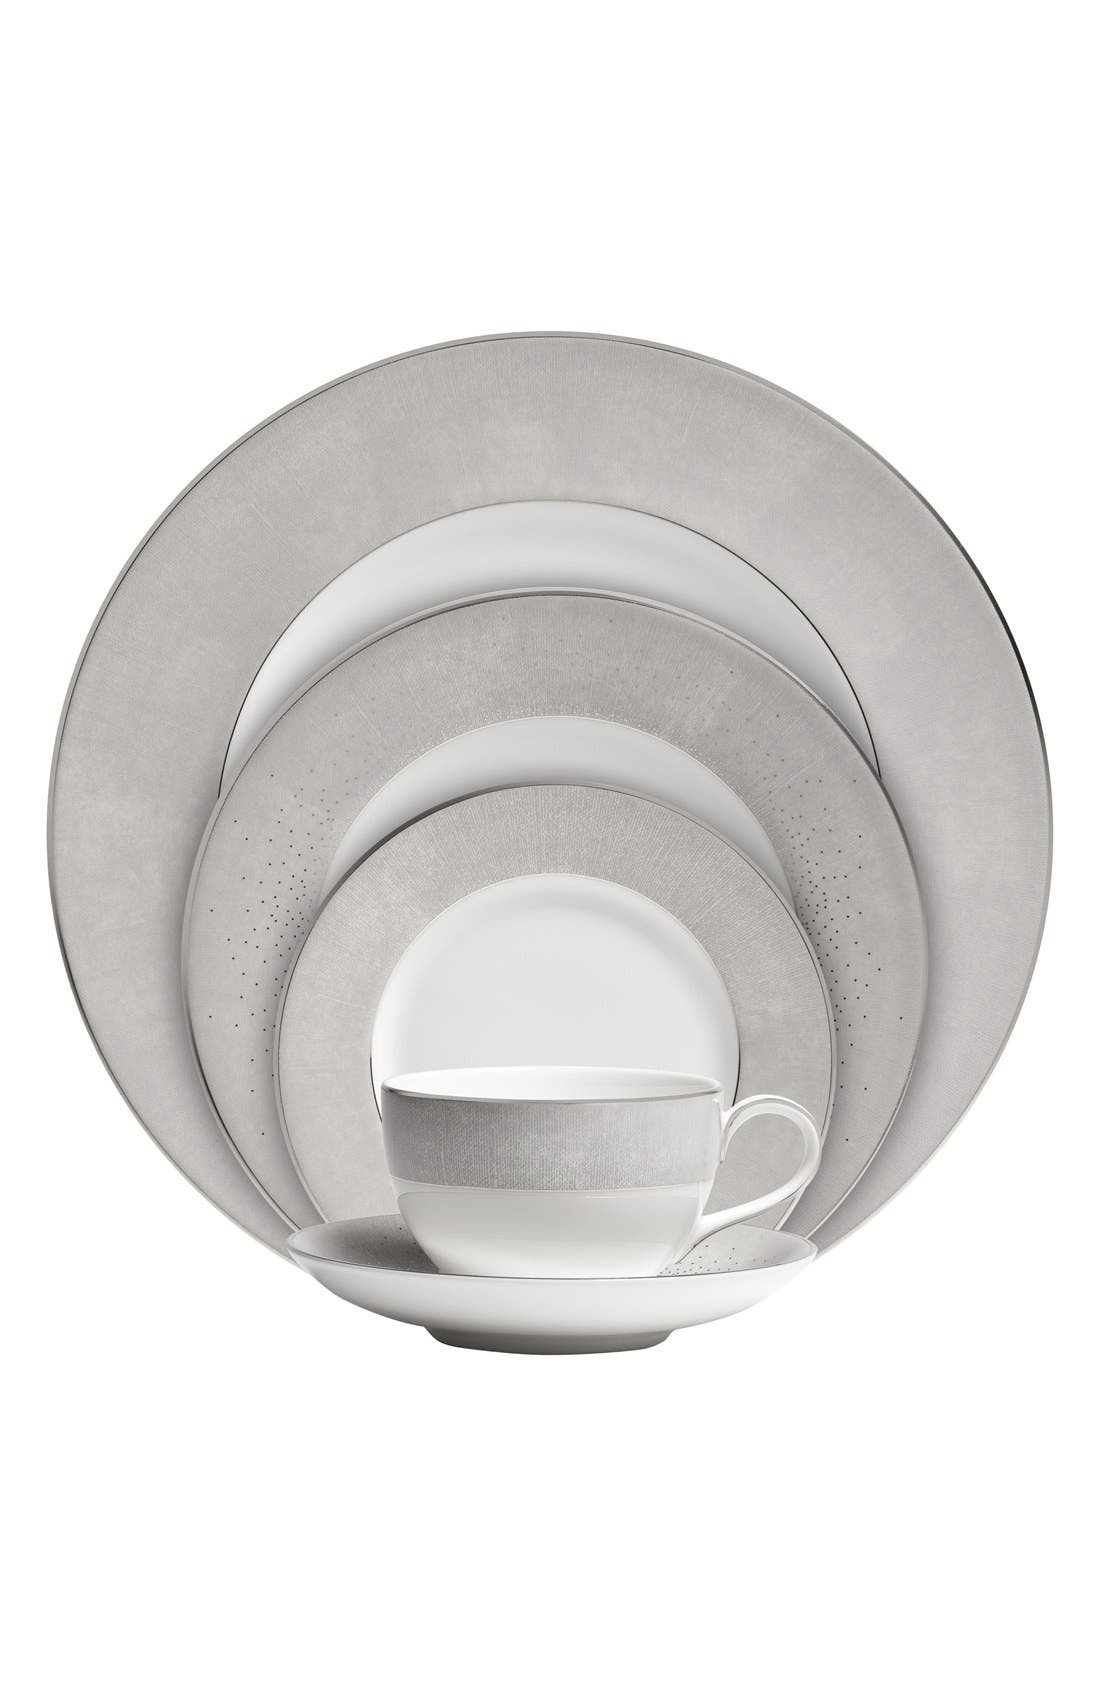 MONIQUE LHUILLIER WATERFORD 'Stardust' 5-Piece Bone China